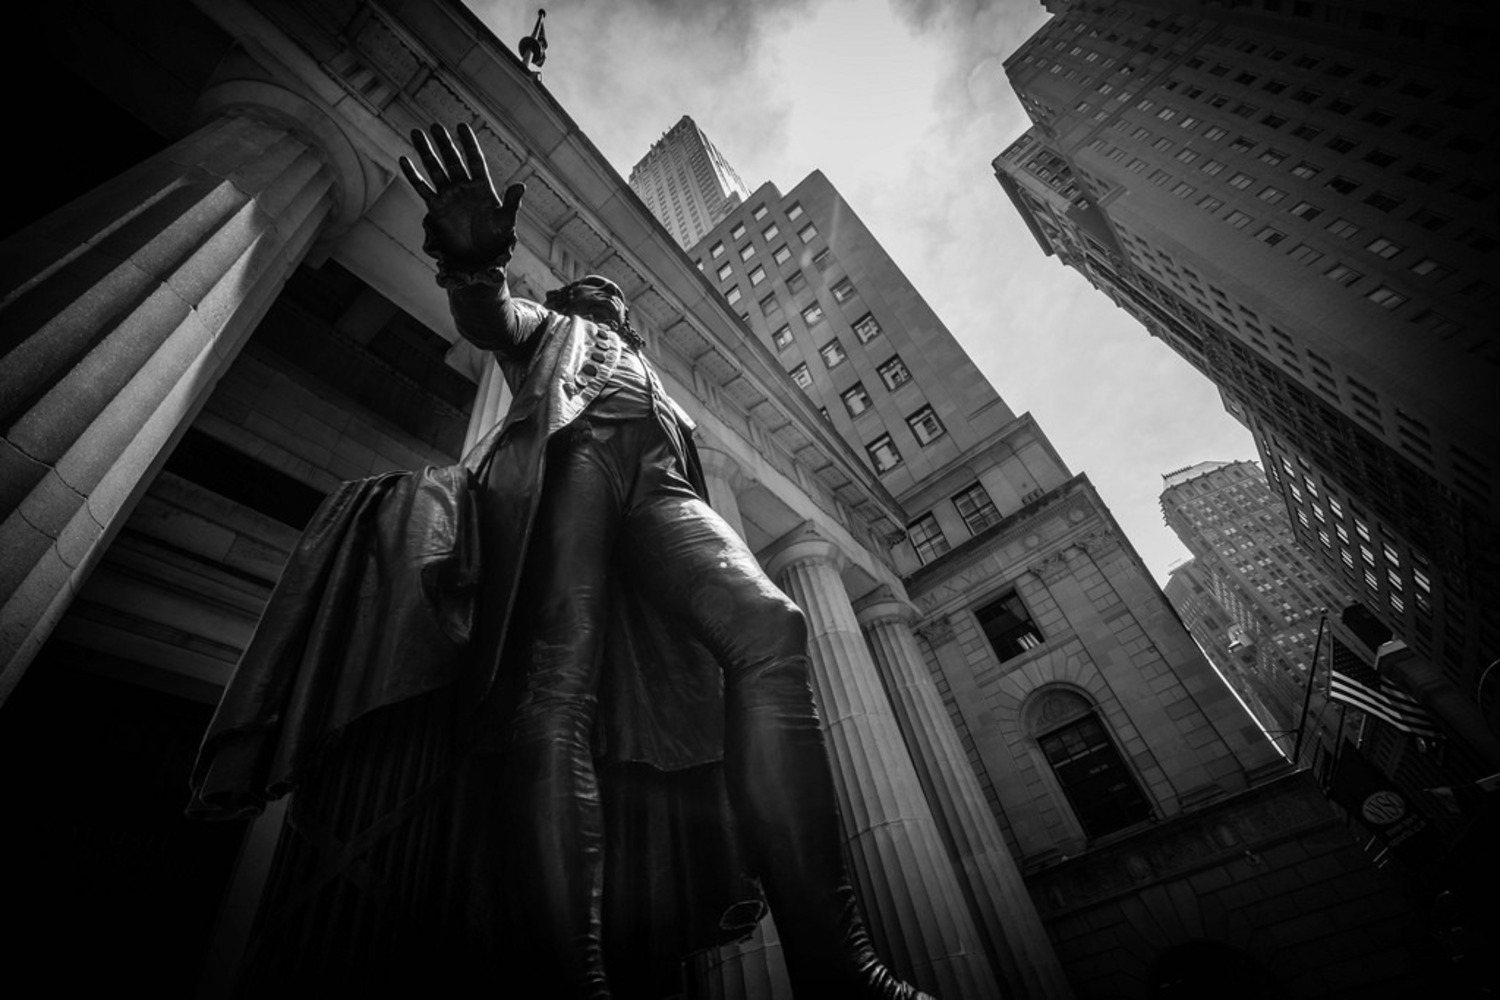 George Washington Statue in New York | George Washington Statue,  Federal Hall National Memorial, Wall Street, Manhattan, New York City